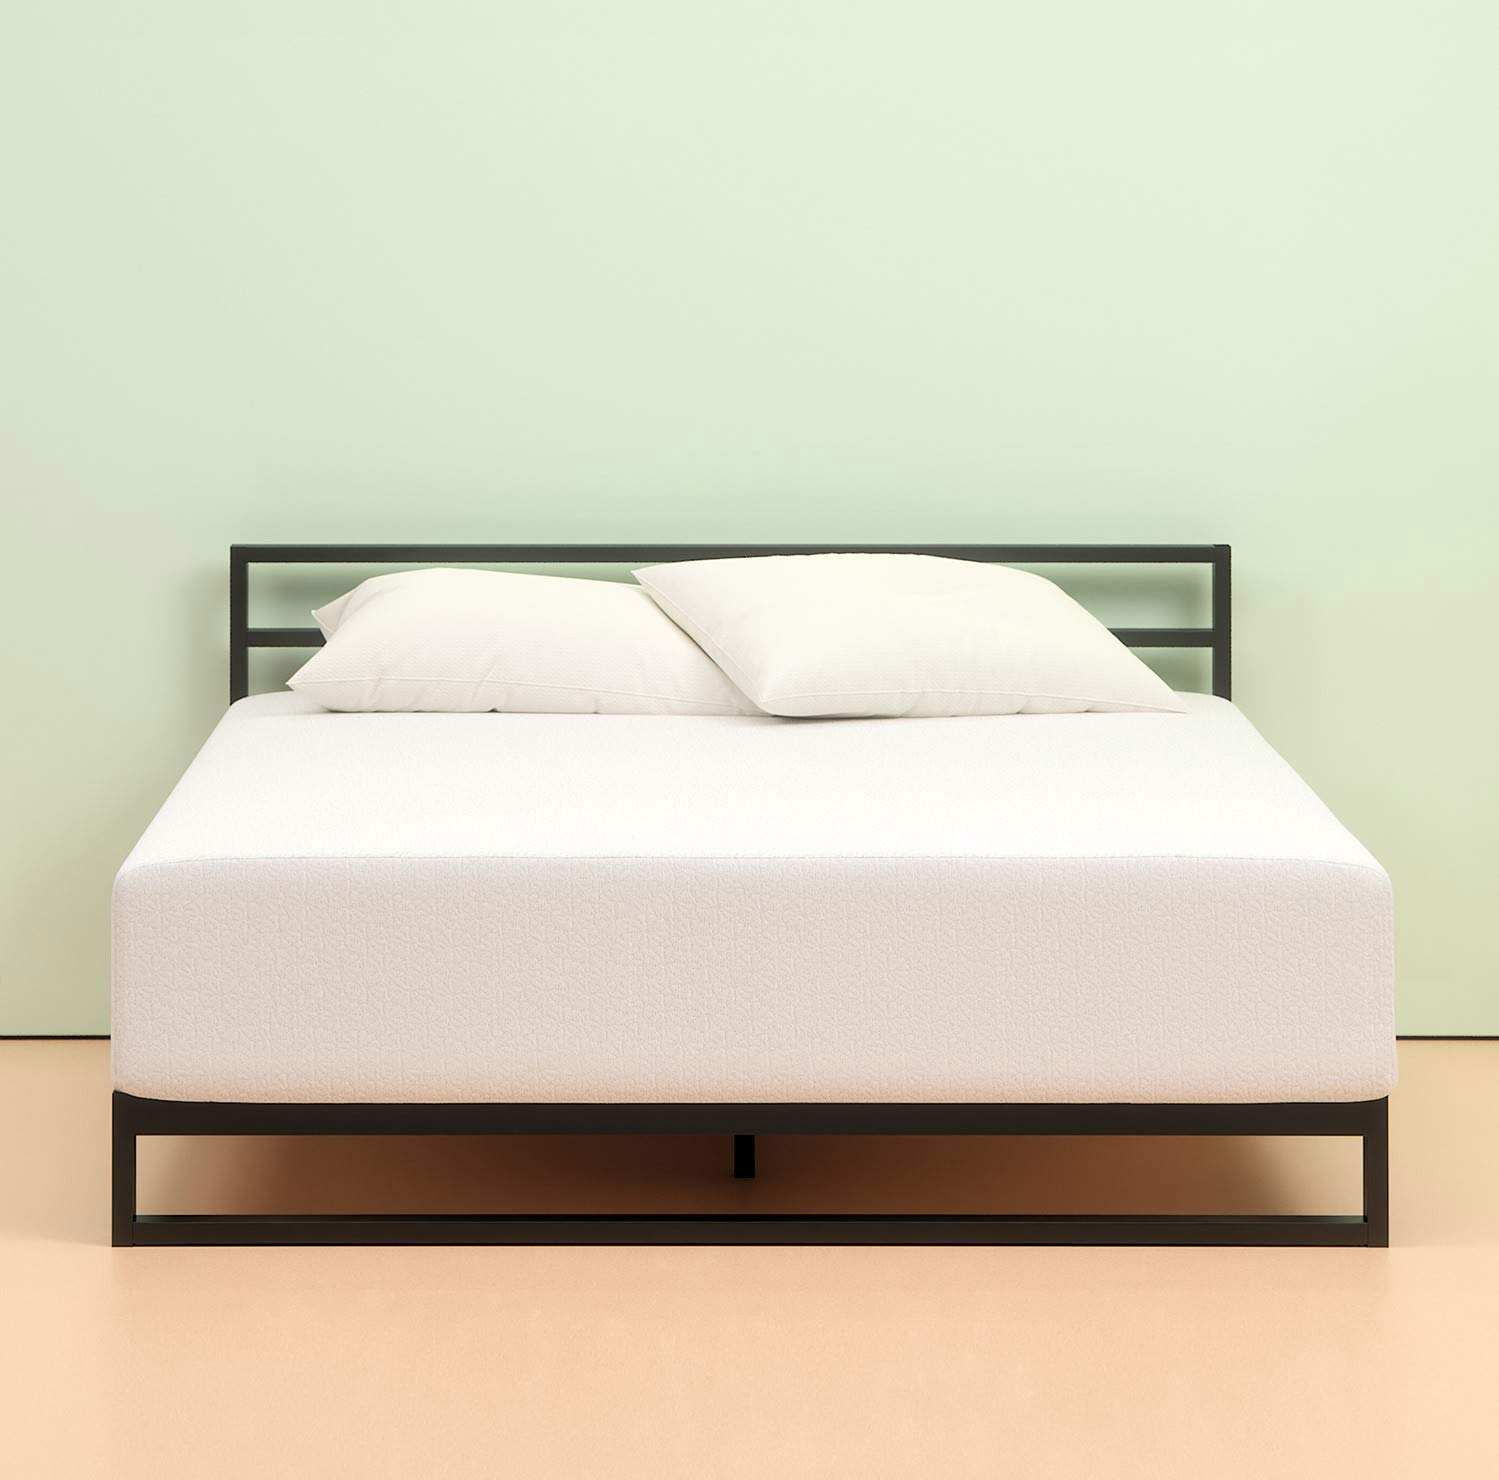 Smooth white plush foam mattress